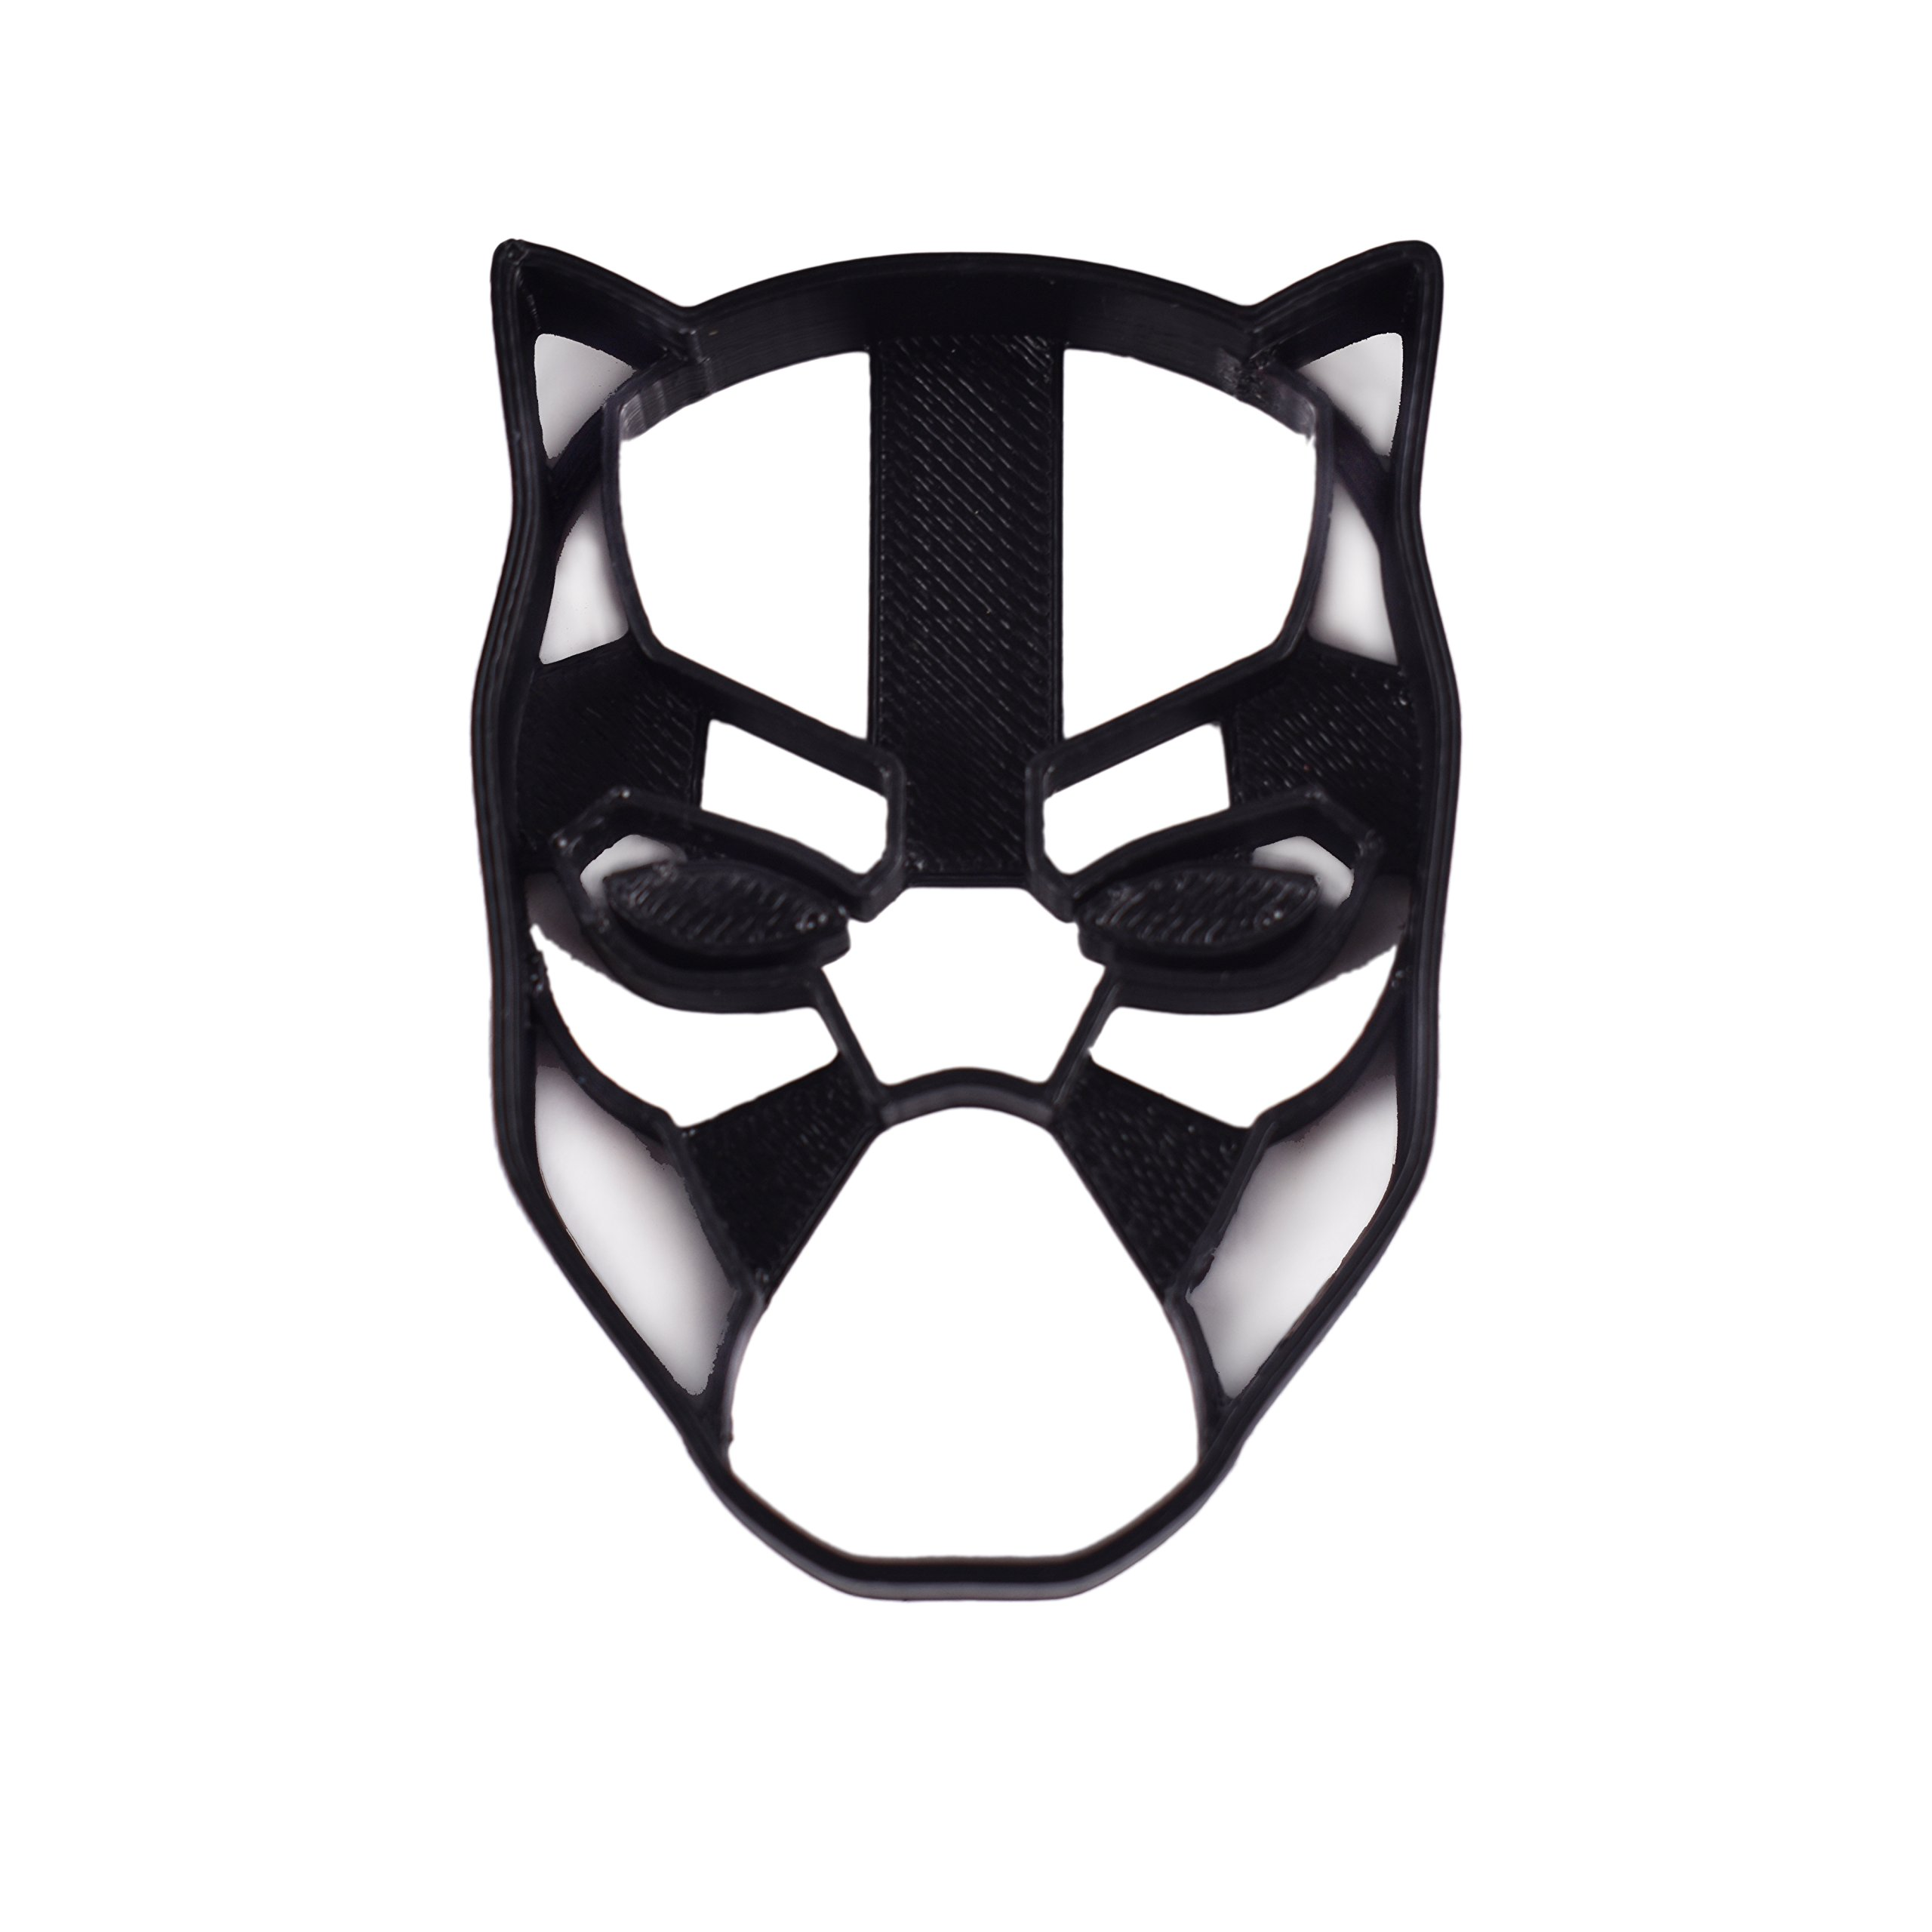 Black Panther Cookie Cutter & Fondant Cutter Classic Superhero Black Logo for Kids and Parents - Perfect for Cookies Cake Decorating Cupcake Toppers (1 Medium 2'' x 3'')